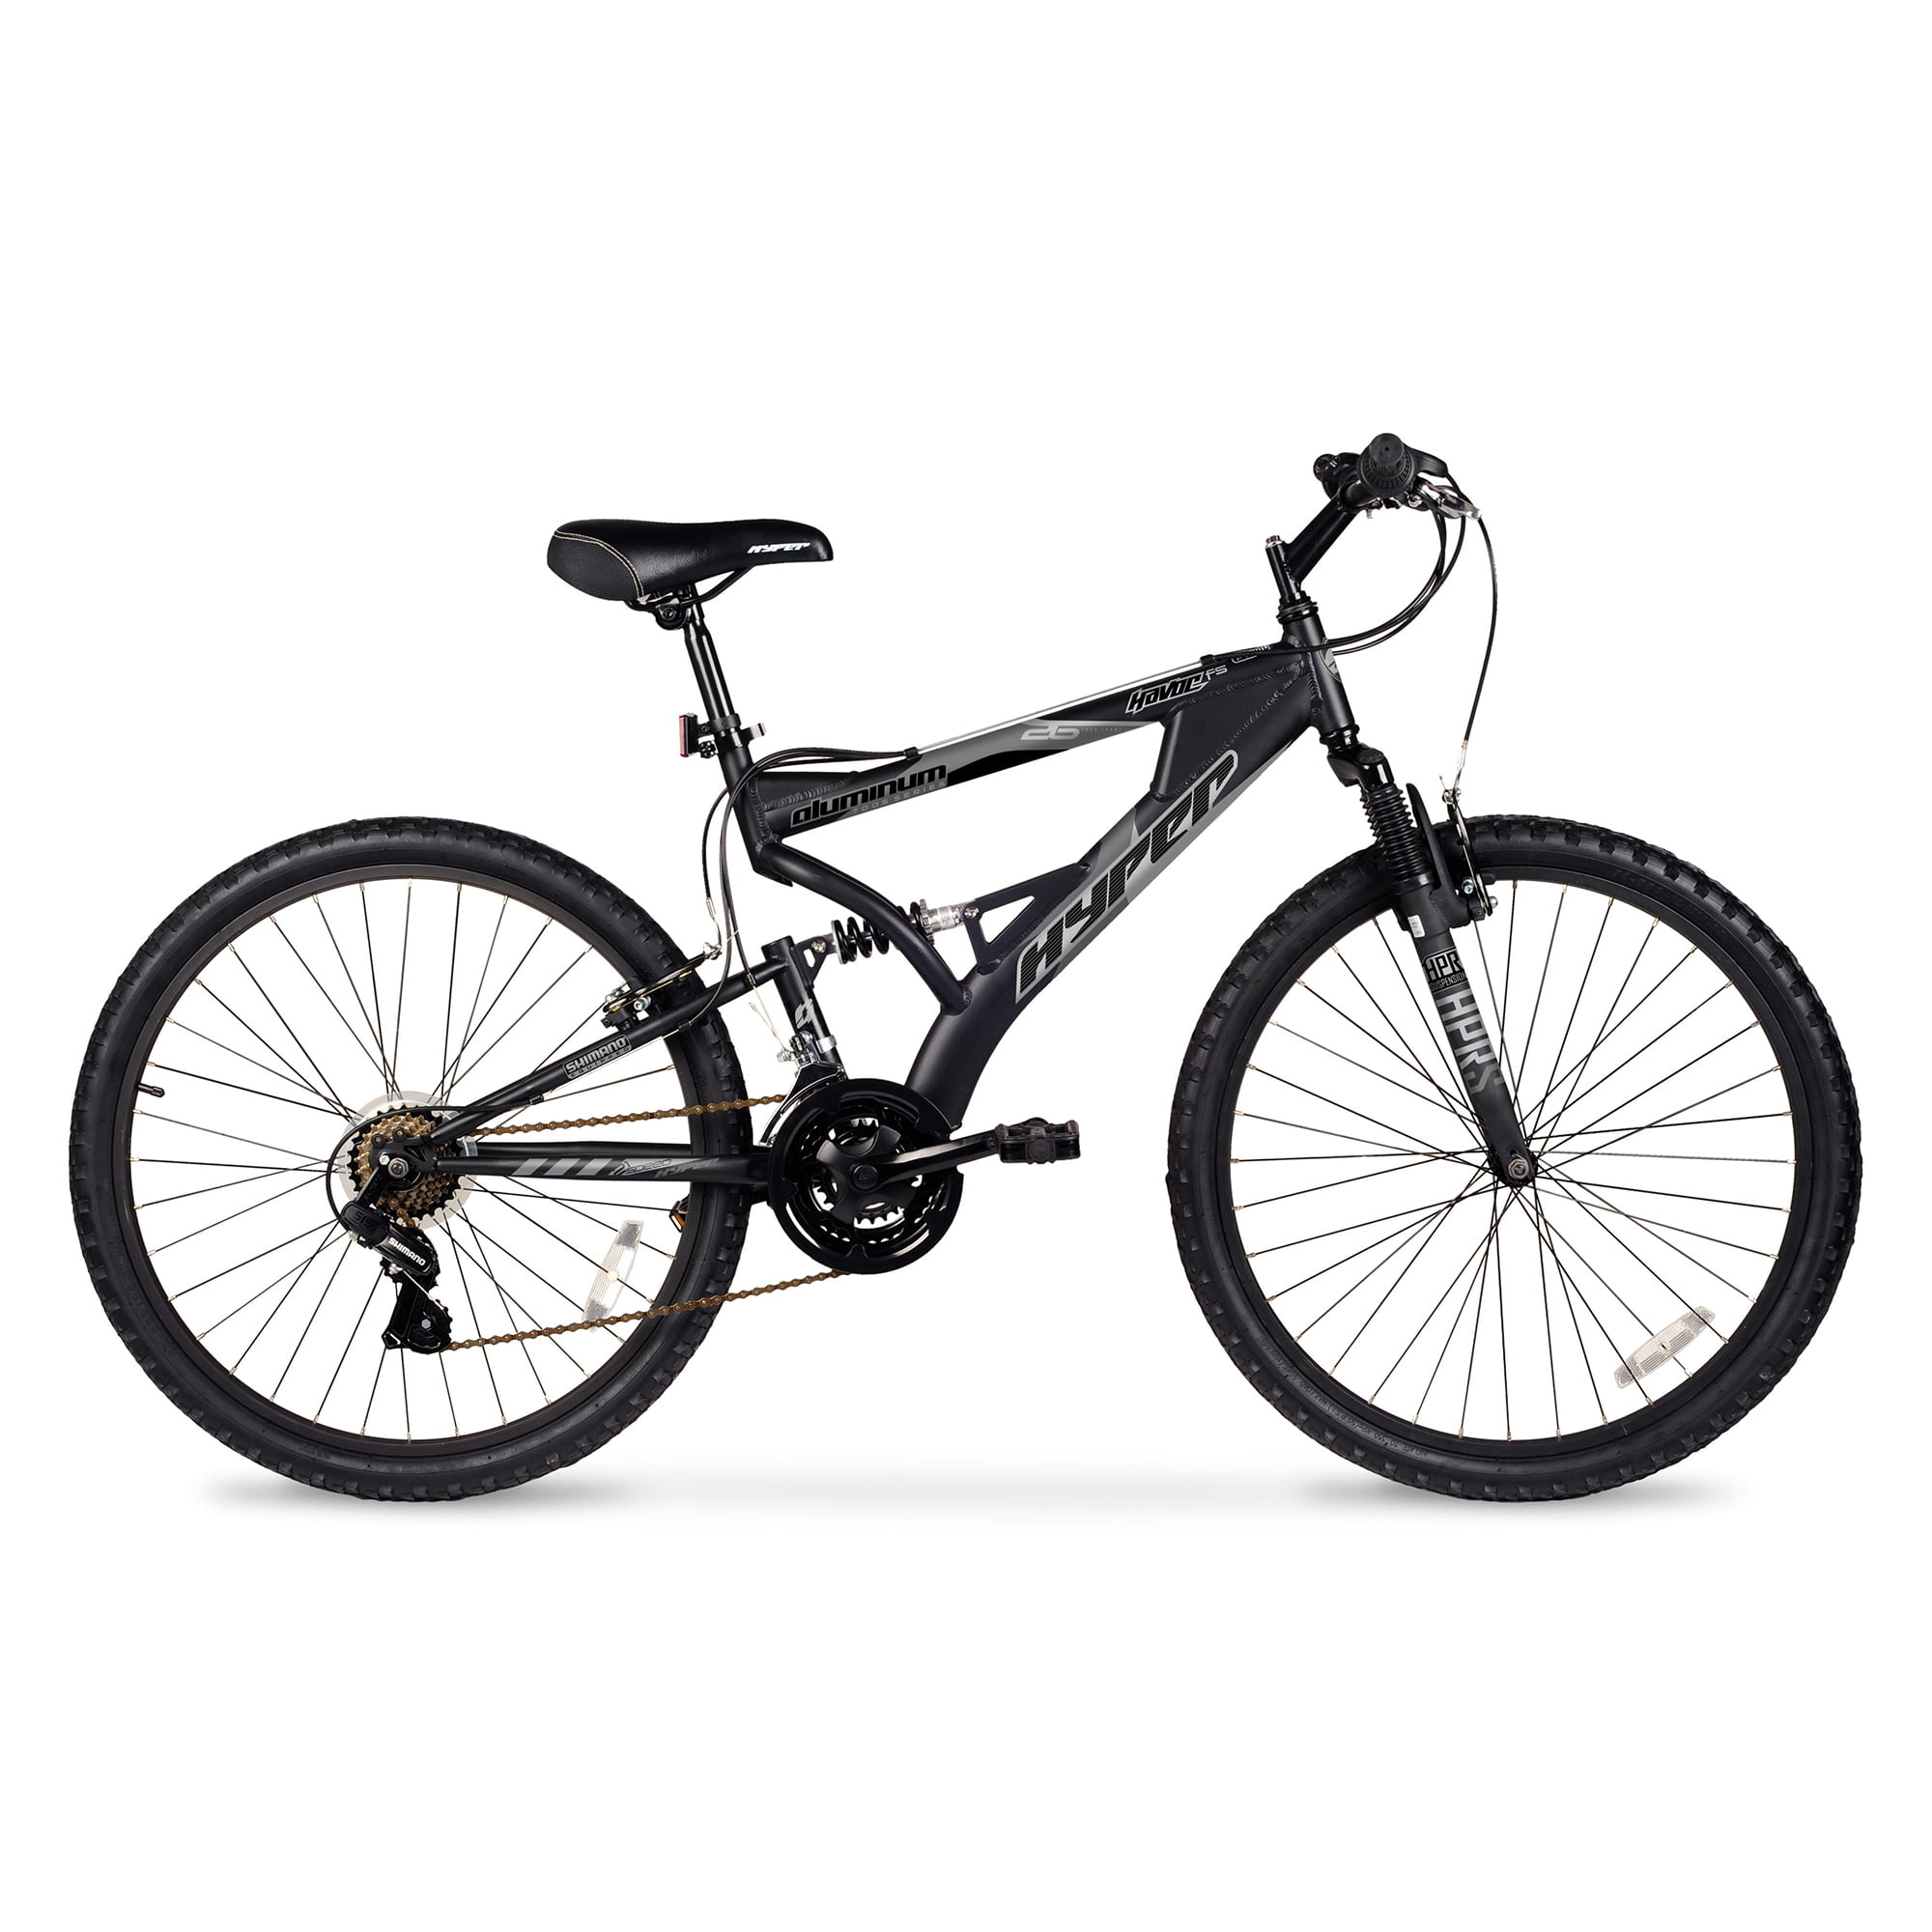 "HYPER 26"" Havoc Men's Mountain Bike, Black by Hyper Bicylces"